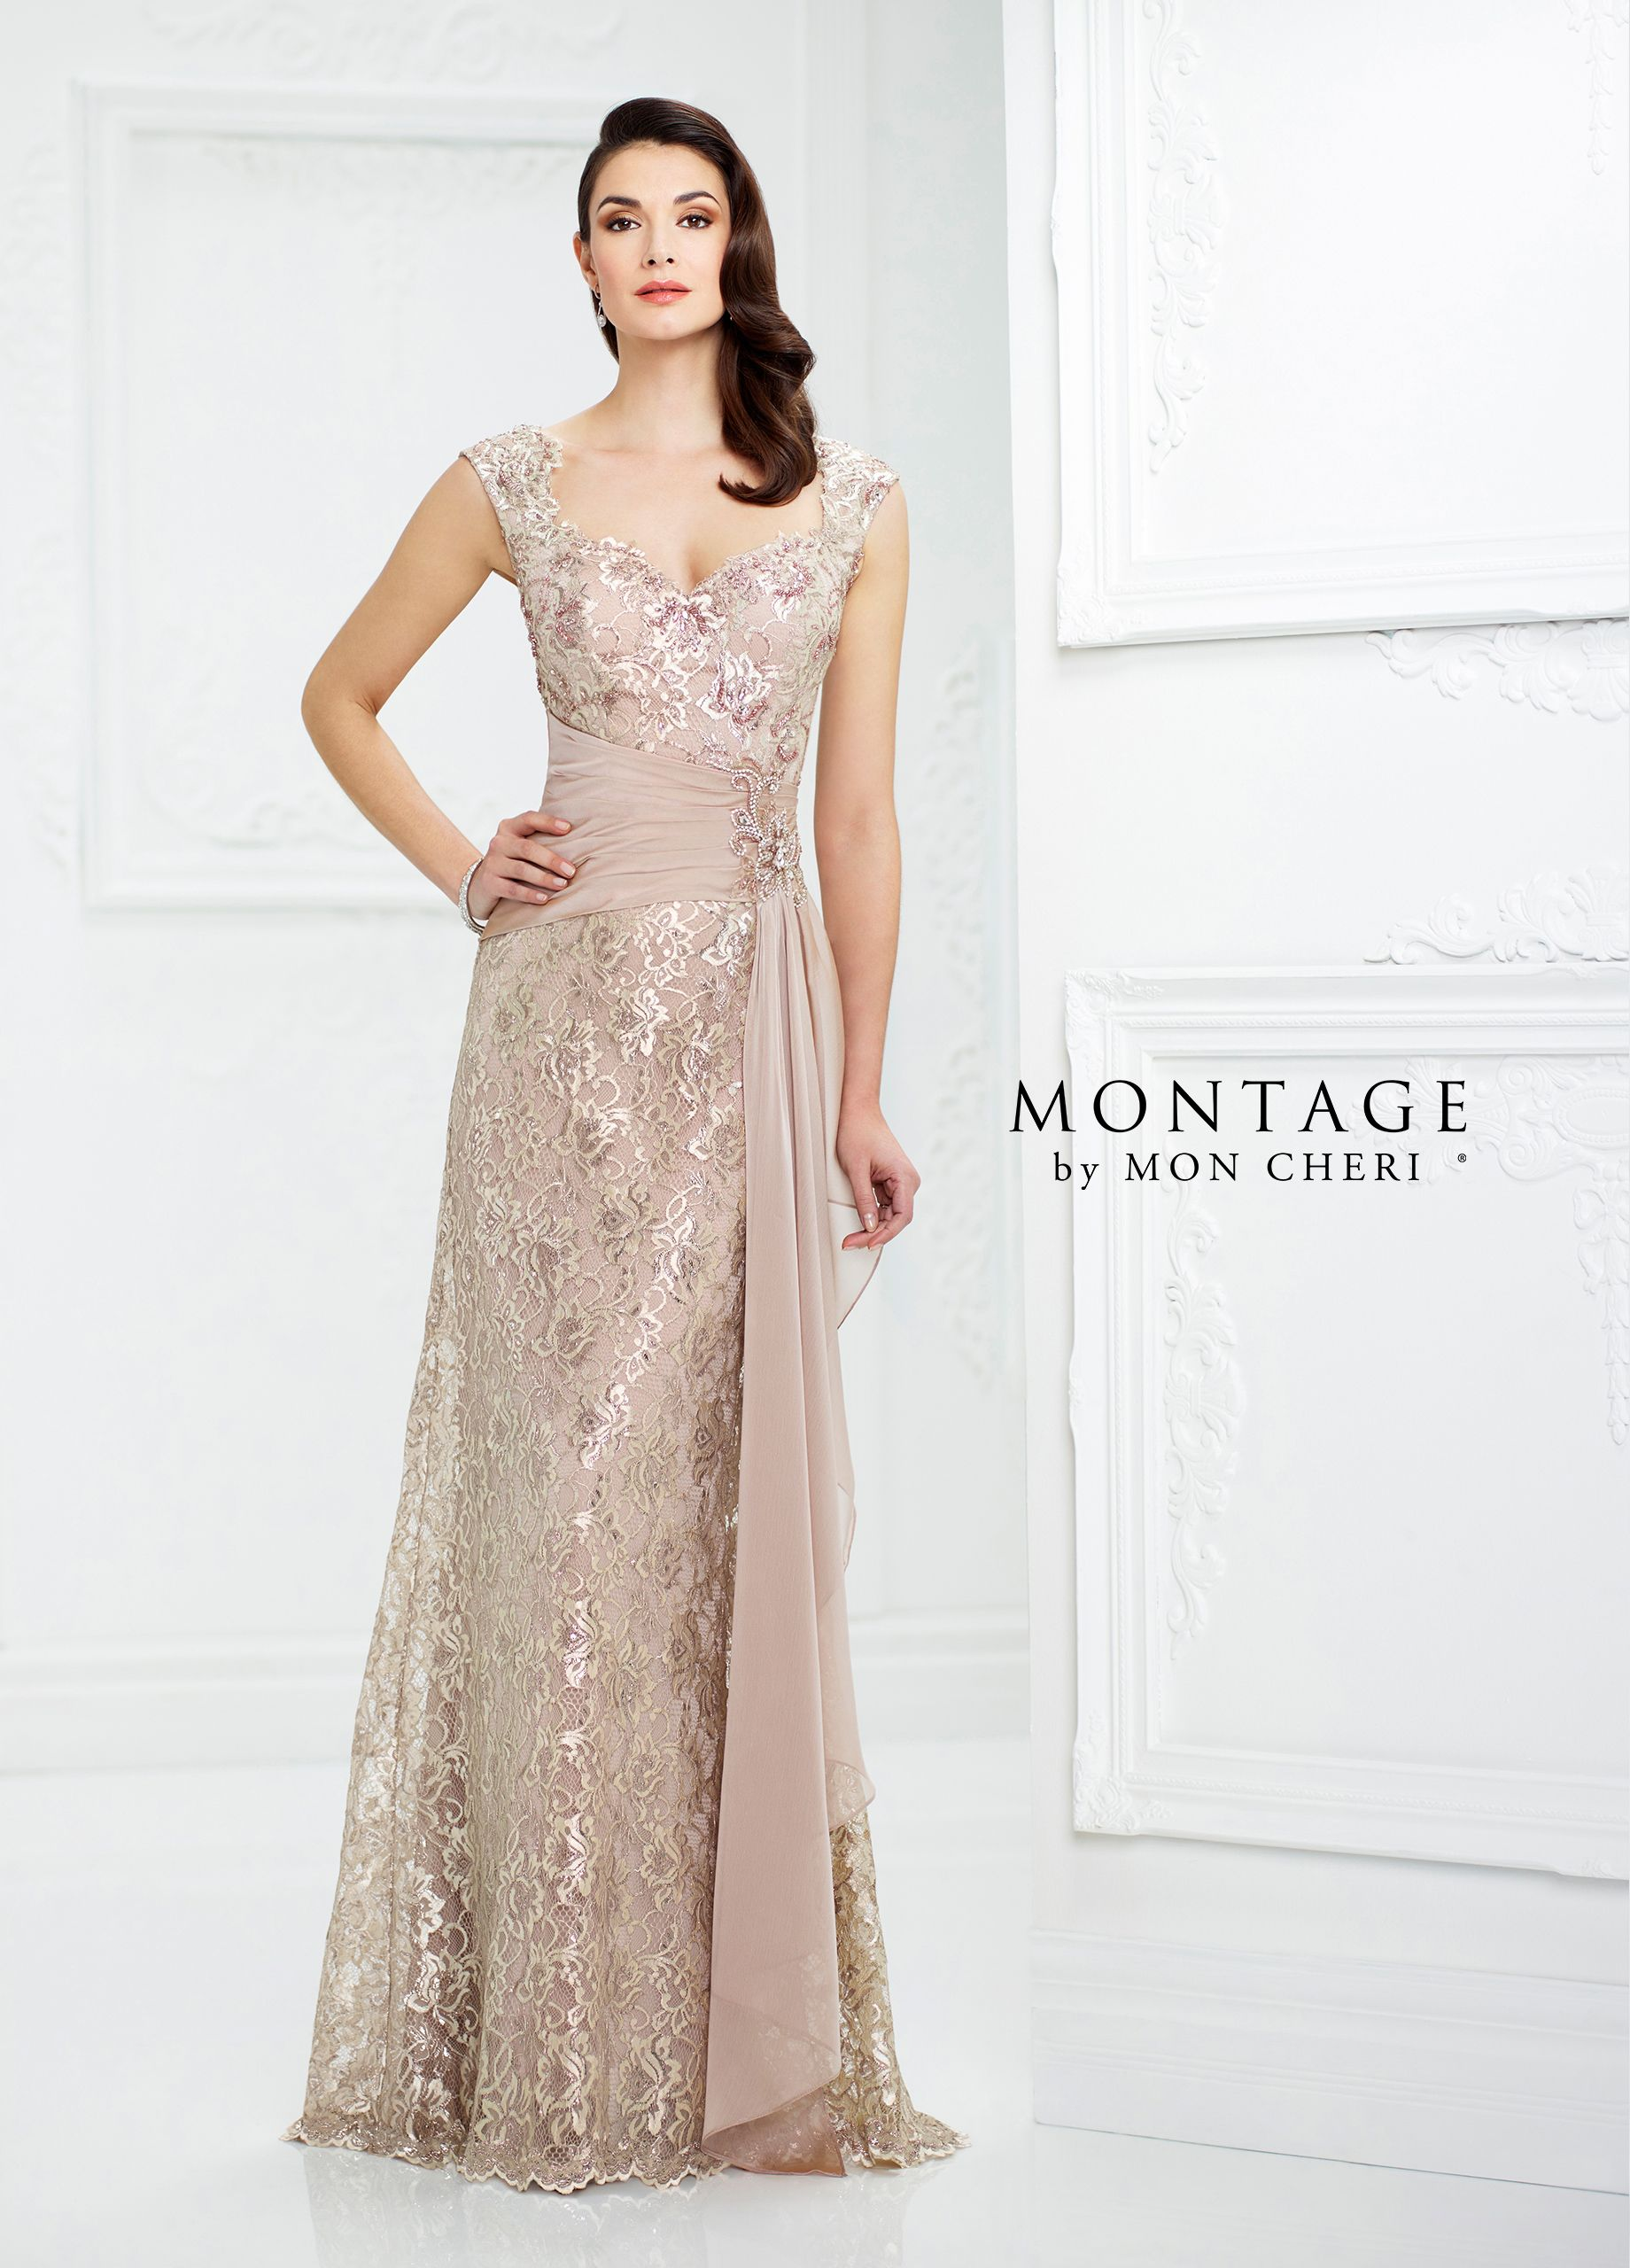 0d5478eac74a4 217954 - Sleeveless metallic lace and two-tone chiffon slim A-line gown  with wide shoulder straps, Queen Anne neckline, V-back, side draped chiffon  natural ...